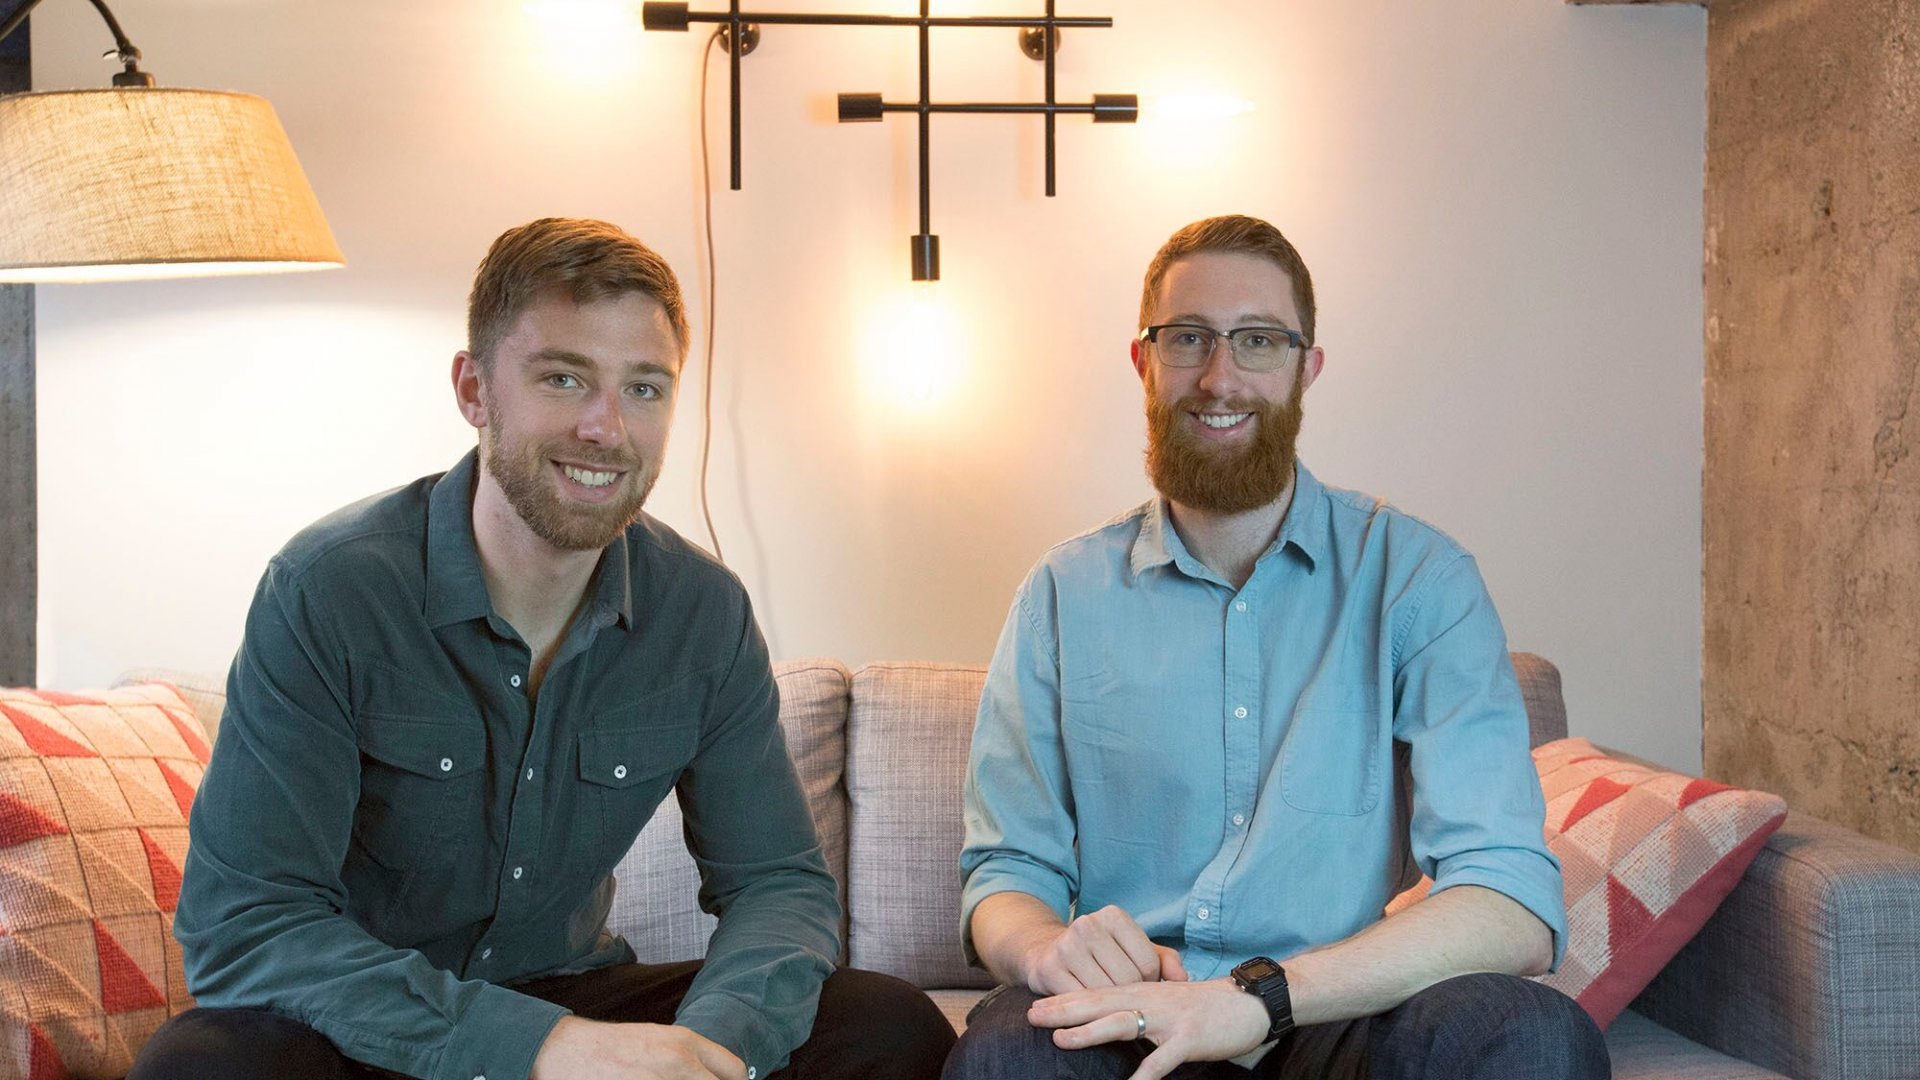 Dave Evans, left, and brother Nate Evans are the  founders behind Fictiv, a San Francisco startup that connects entrepreneurs to a network of manufacturing machinery they can use to order prototype parts.